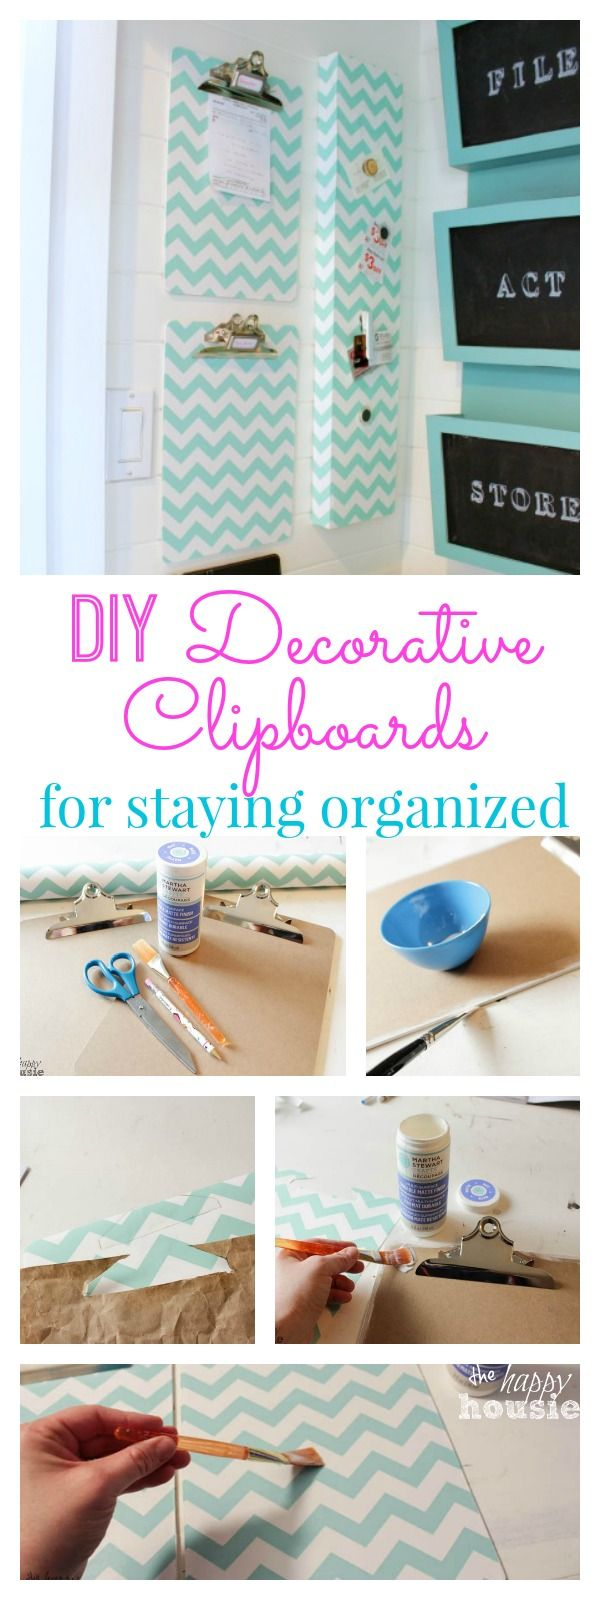 'DIY Decorative Clipboards using Wrapping Paper {& Season in Trunk Giveaway}...!' (via The Happy Housie)